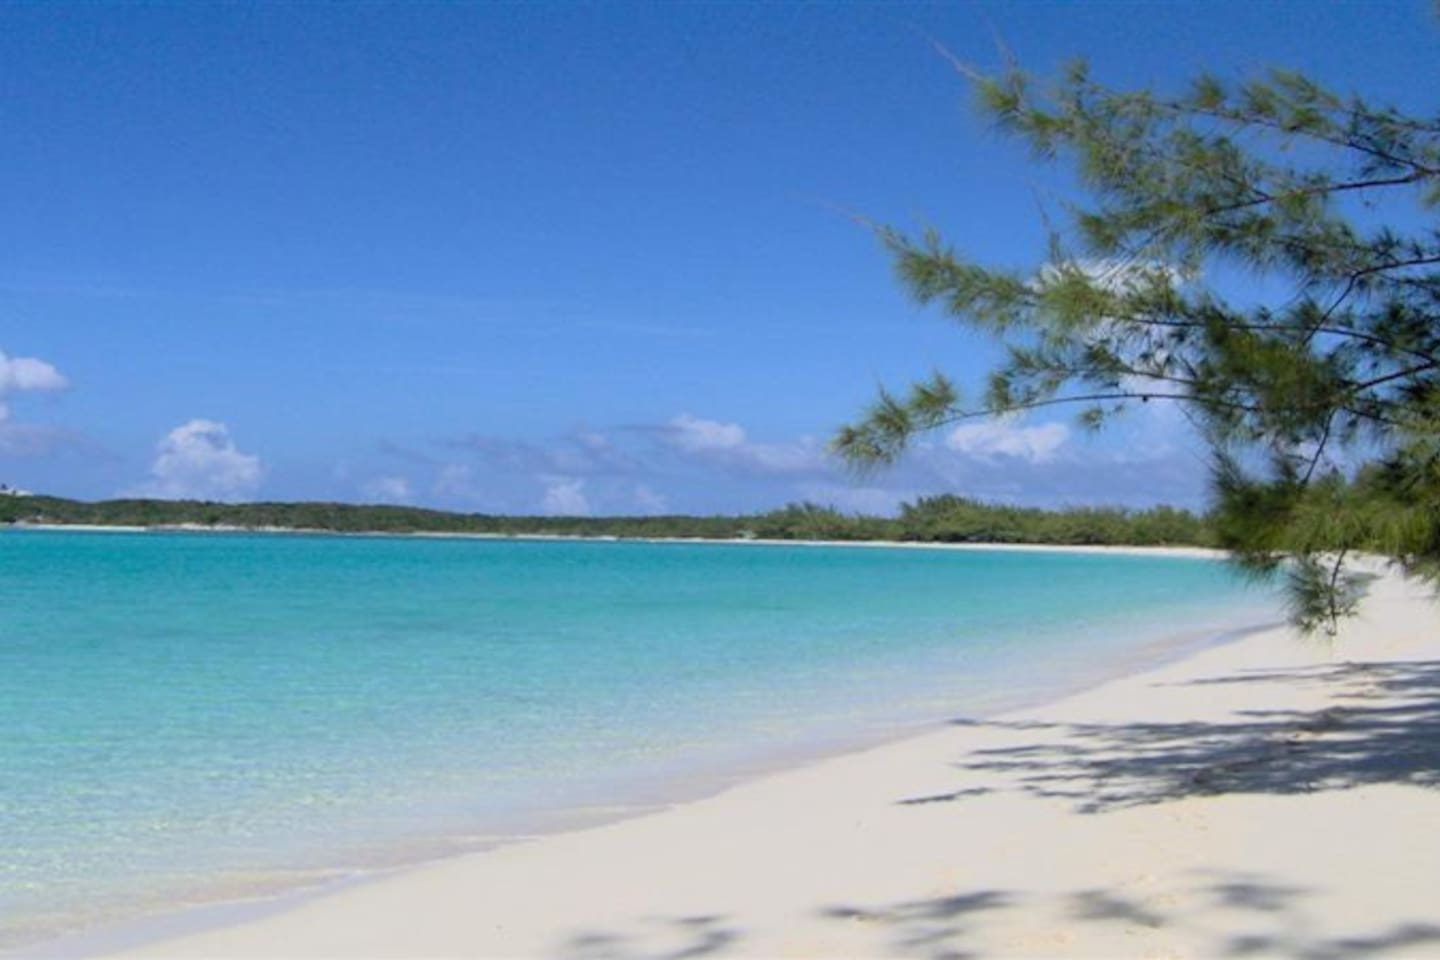 Just a 3 minute walk away from Exuma Pearl cottage!